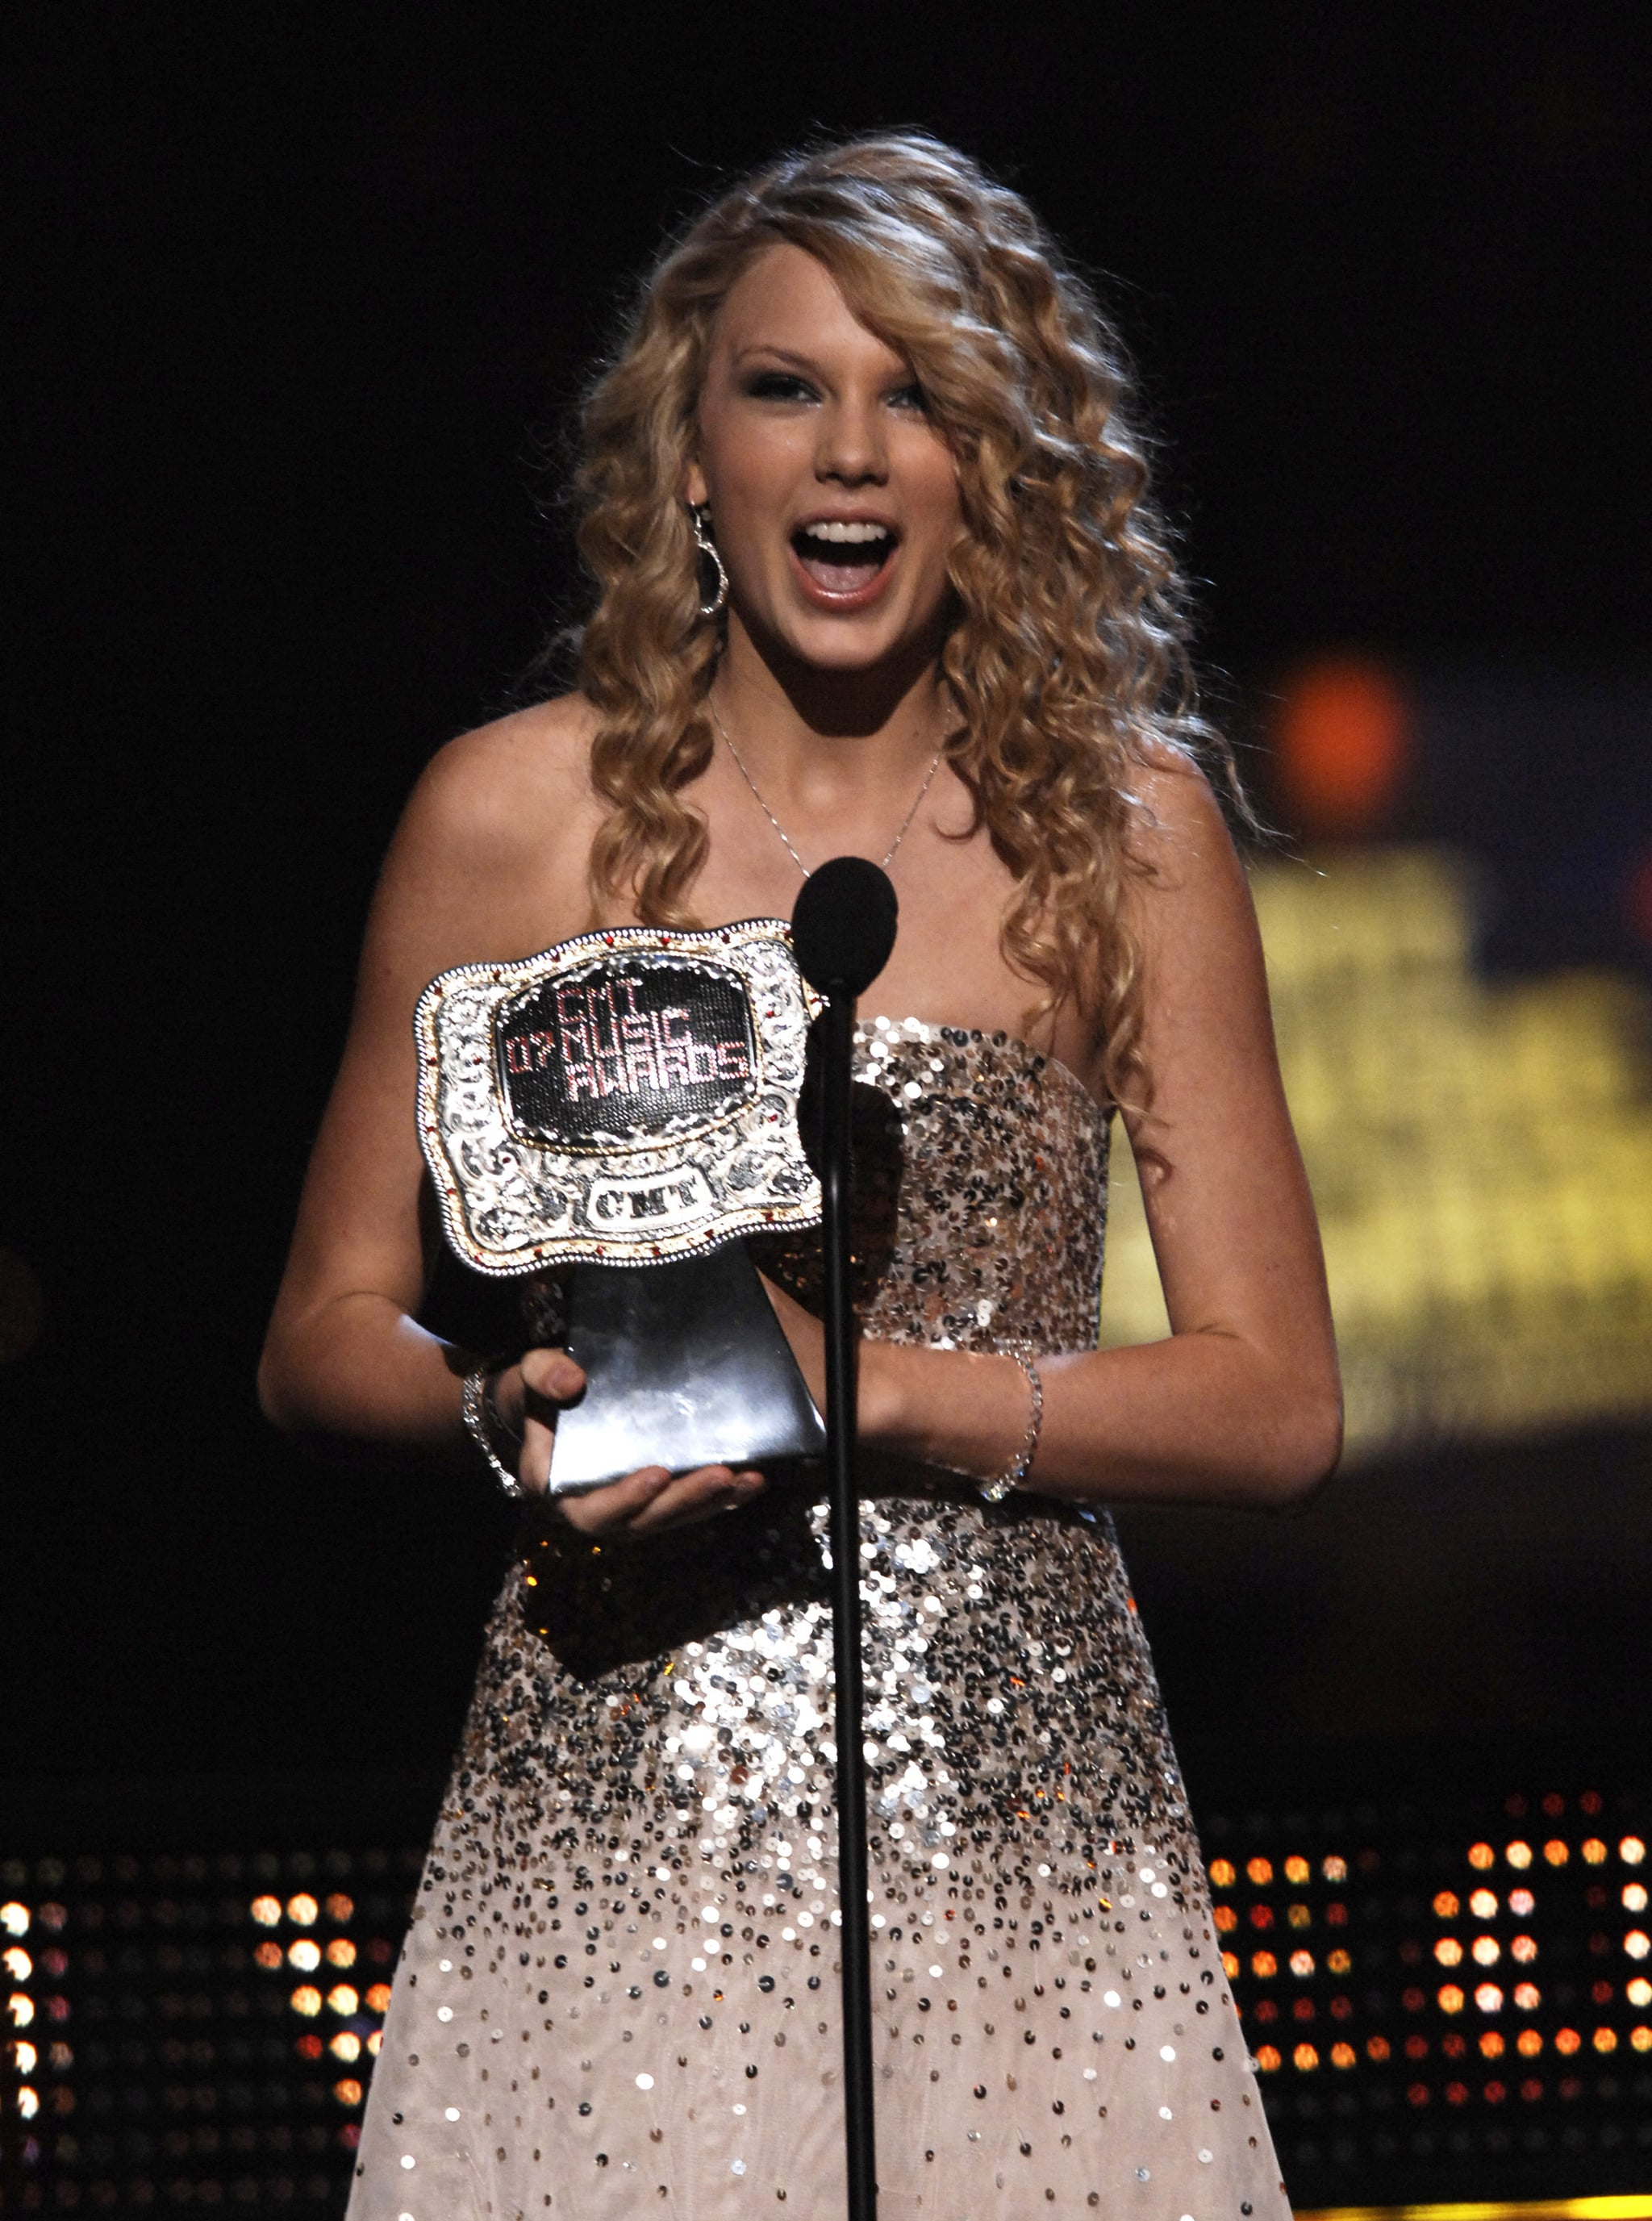 Taylor showed her shock while accepting a CMT award in April 2007.